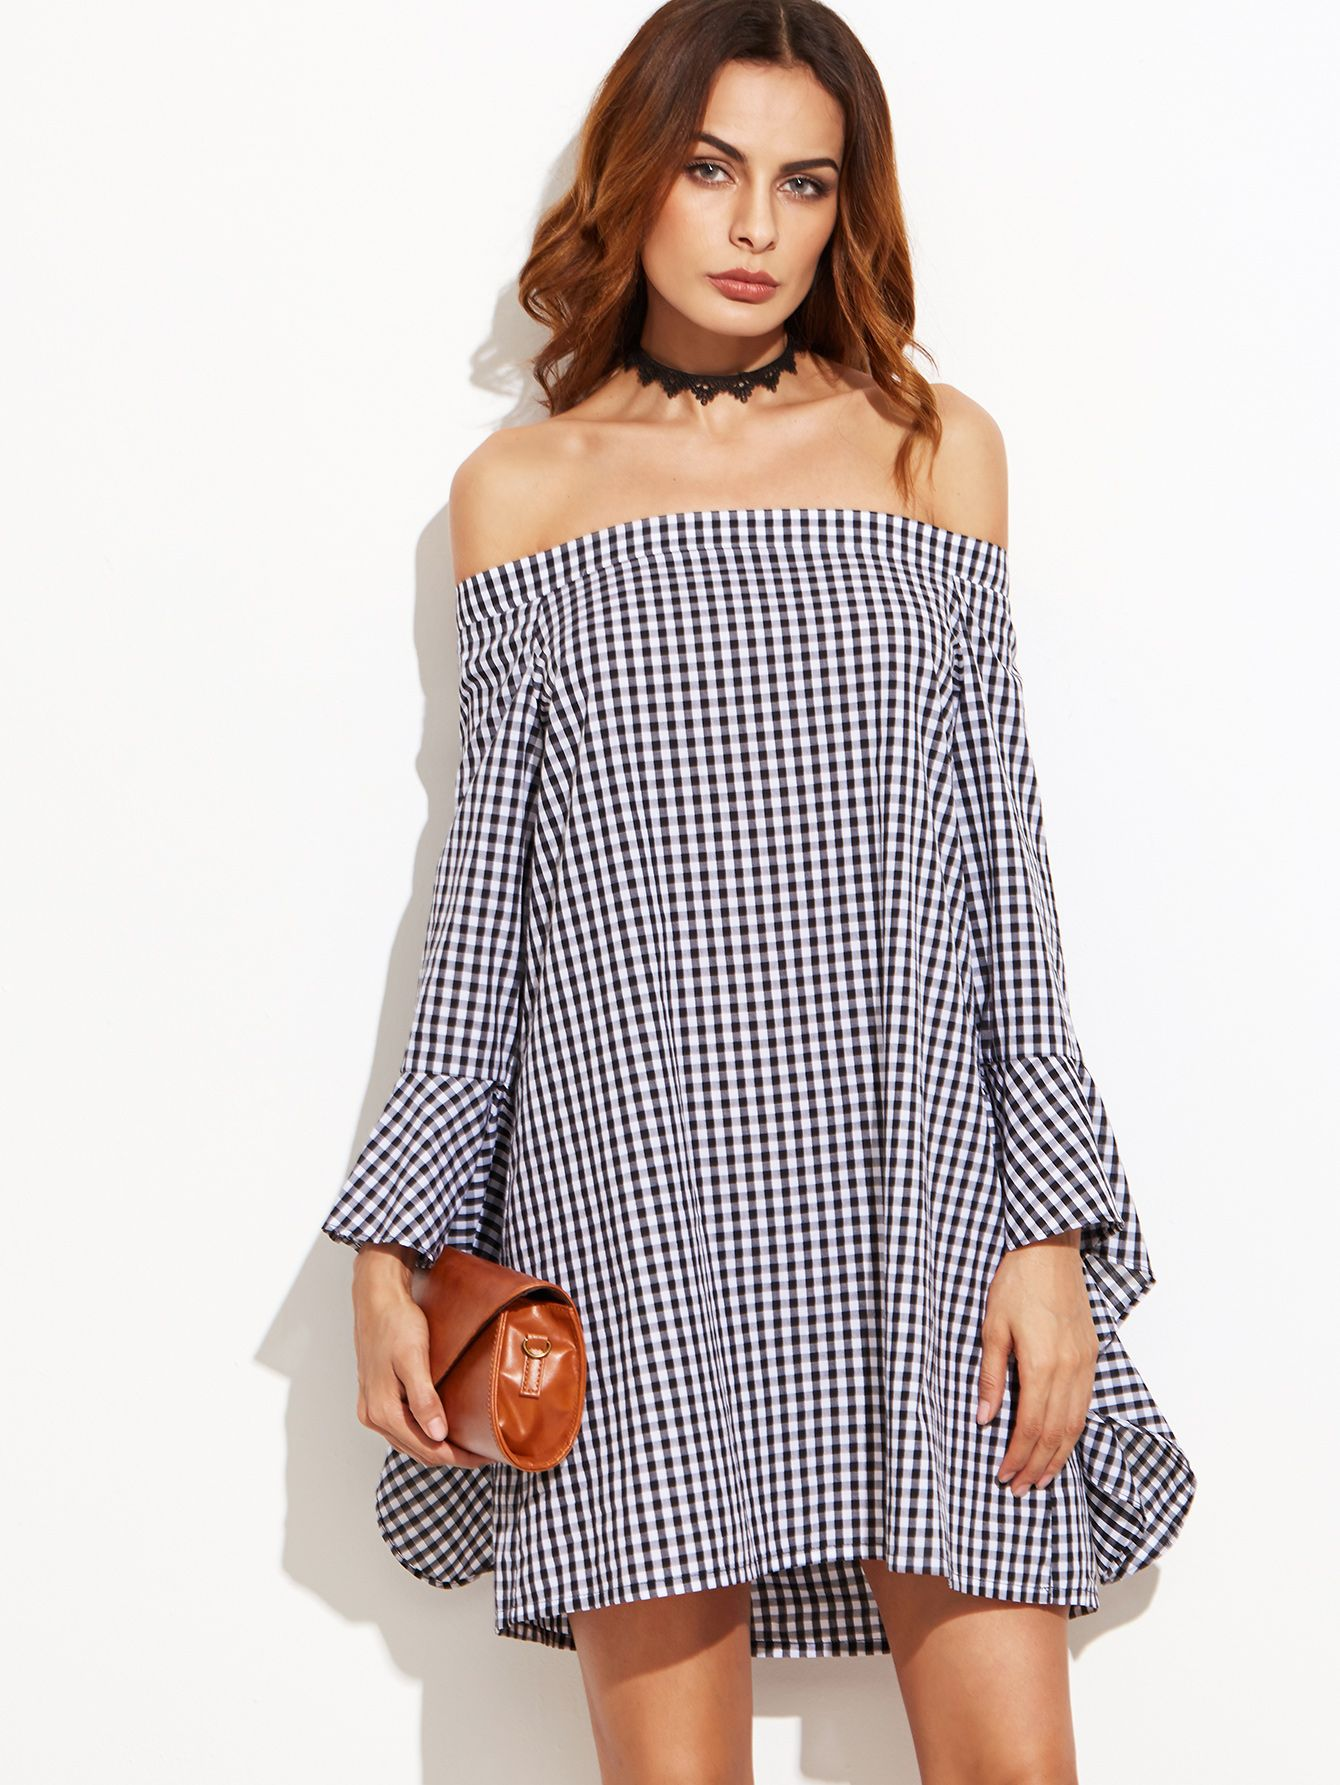 8d5c3369dc Shop Black Gingham Bell Sleeve Off The Shoulder Dress online. SheIn offers  Black Gingham Bell Sleeve Off The Shoulder Dress & more to fit your  fashionable ...